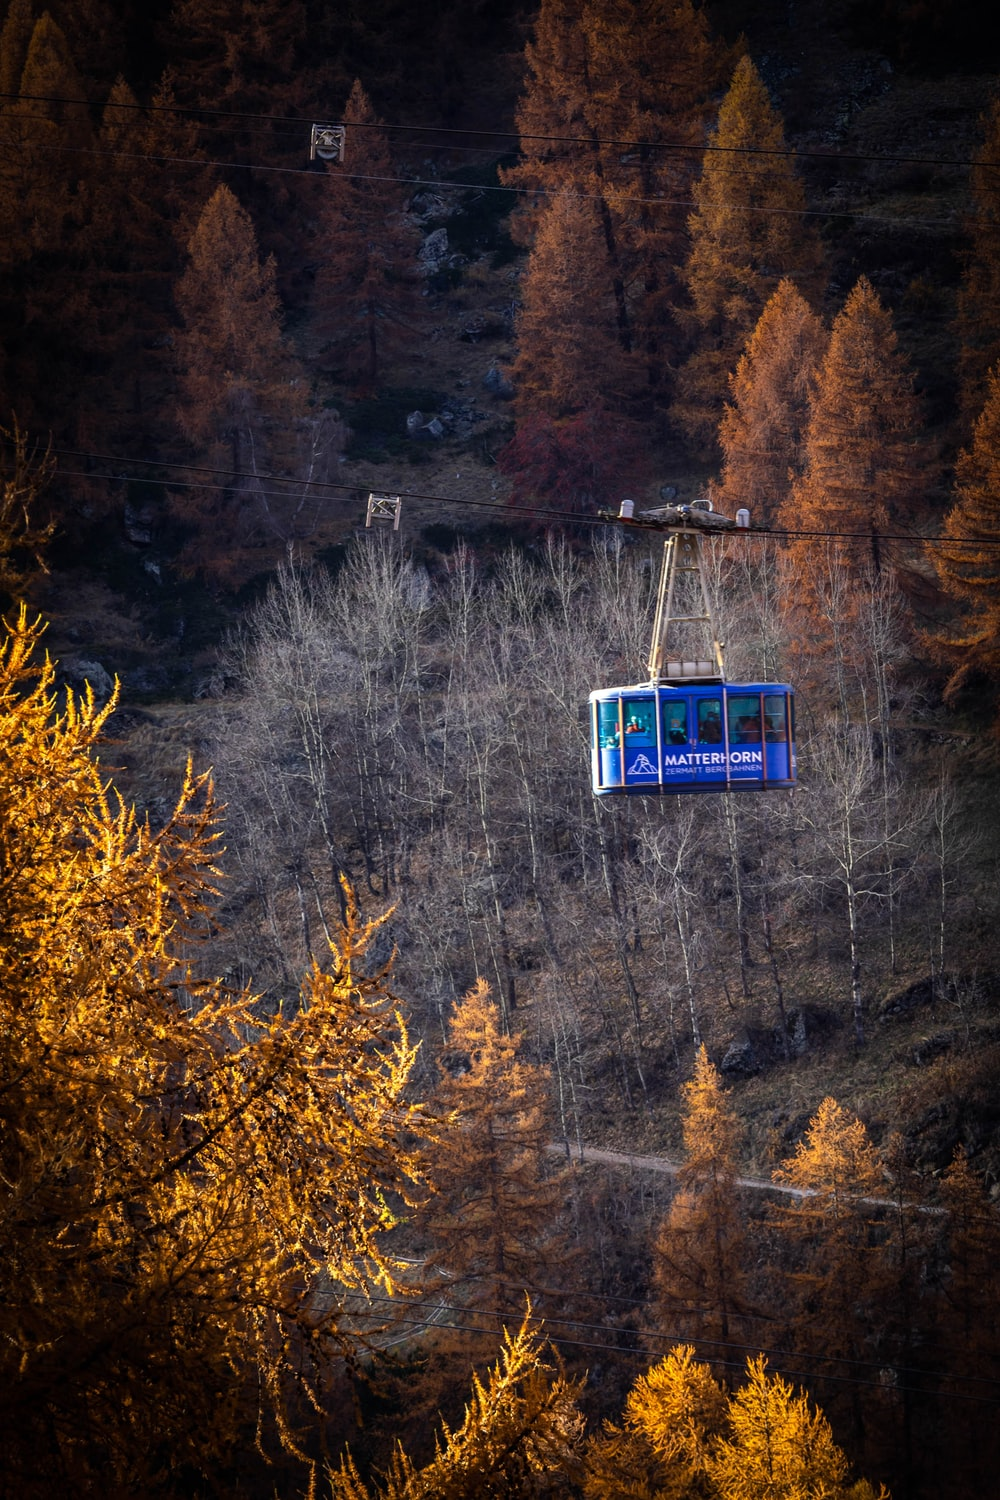 blue and white cable car over green trees during daytime